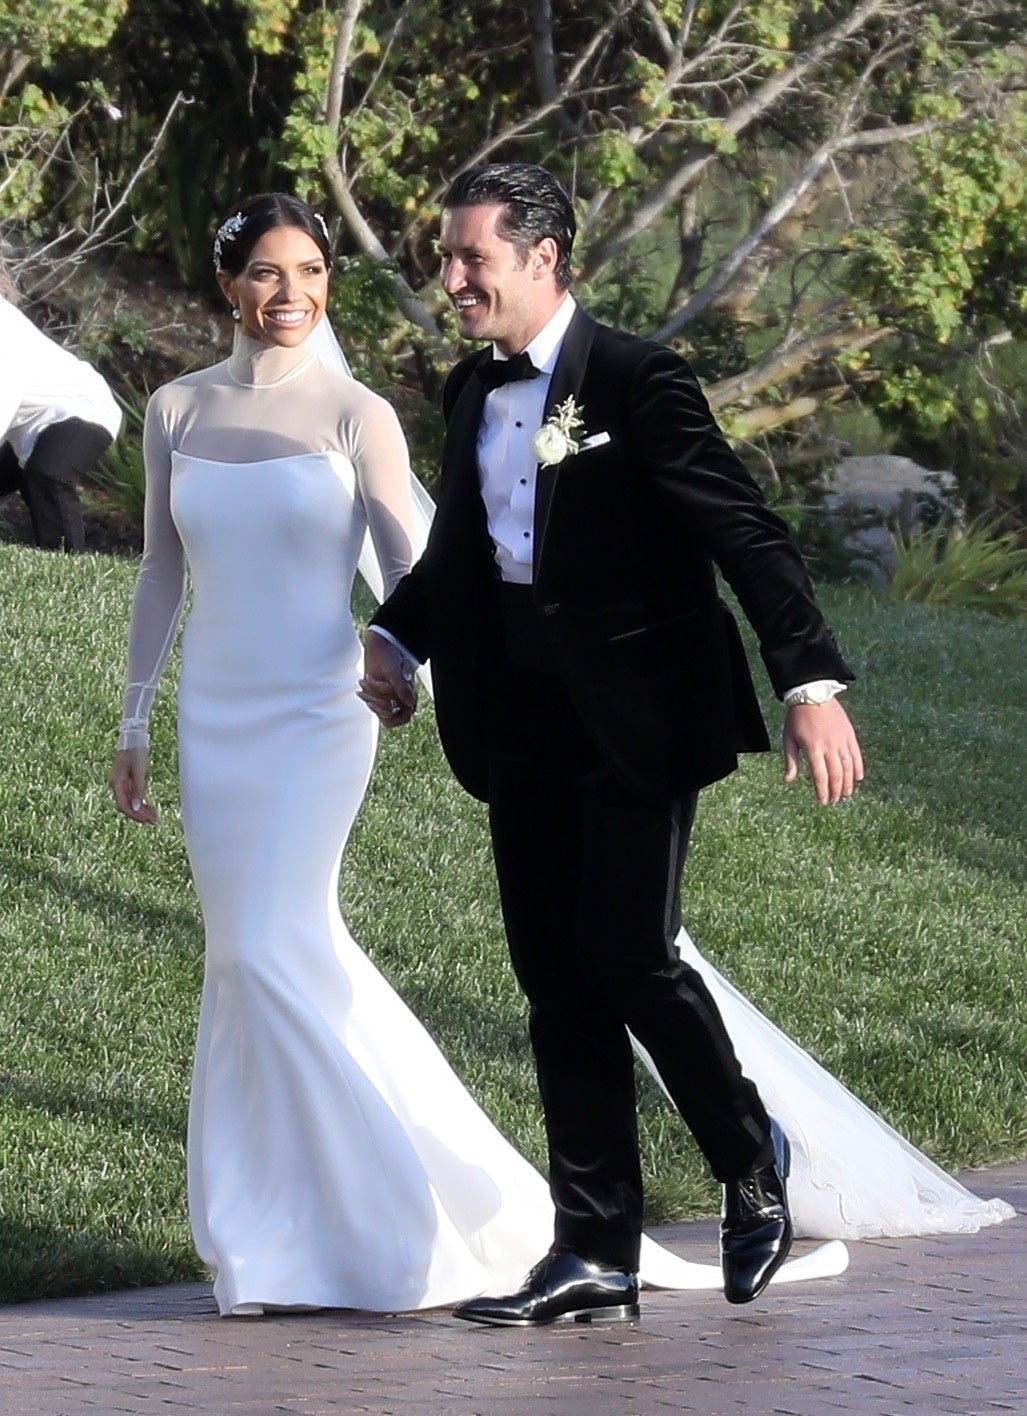 Max dancing with stars married